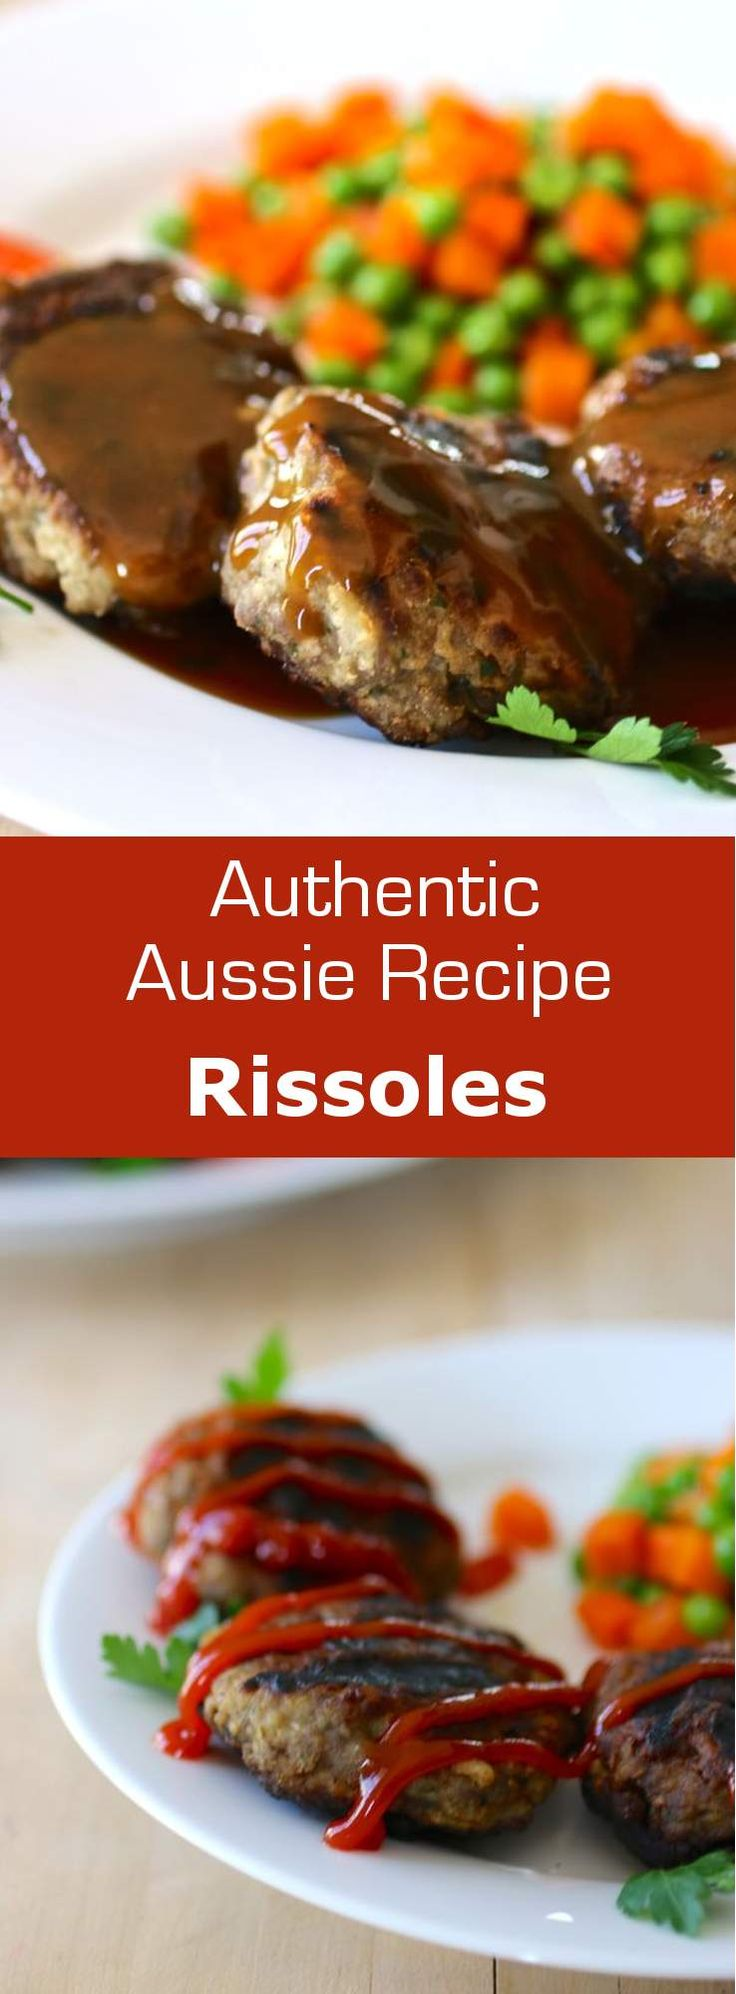 (Vegetarianise) Australian rissoles are meat patties that are grilled on the BBQ. Depending on the recipe, these patties can include grated vegetables. #beef #australia